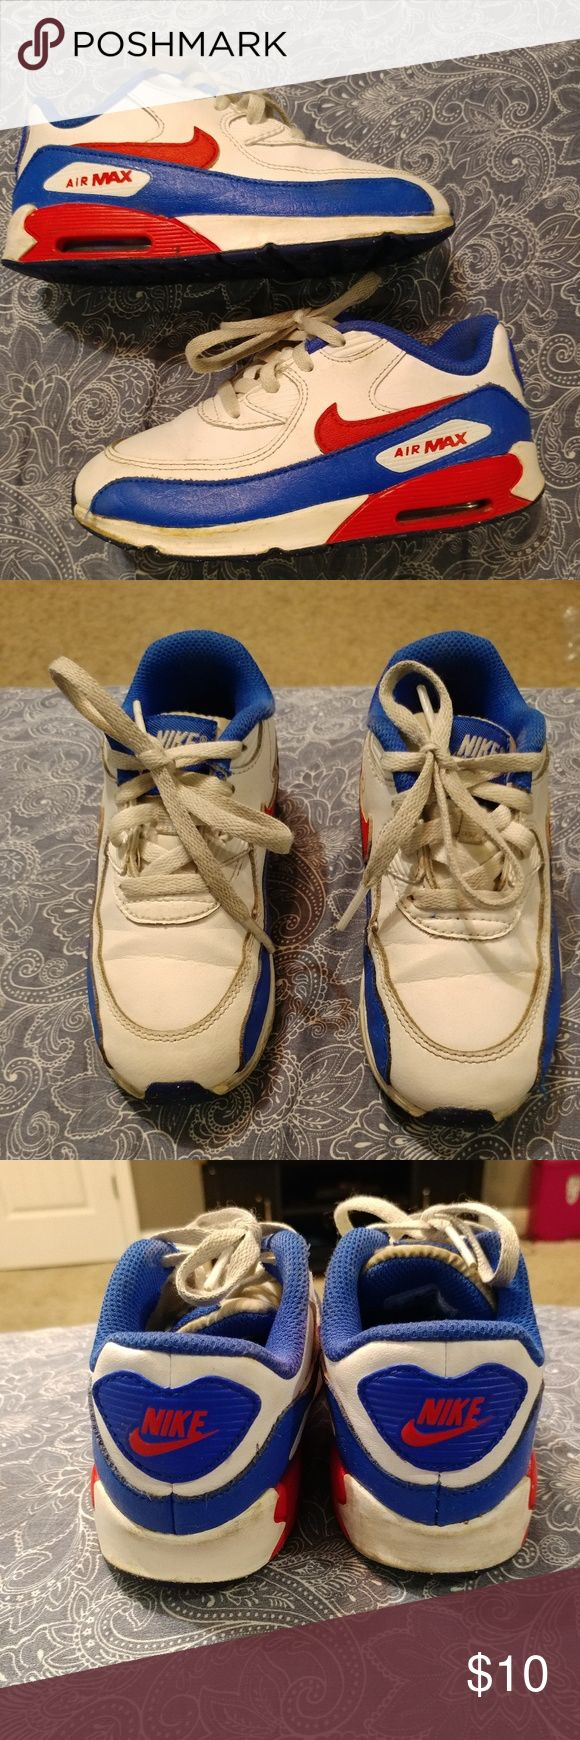 Nike Air Max Patriotic for Boys size 10c toddlers These shoes are so cute and where one of our favorites but they still have plenty of life left and have no major wear. Nike Shoes Sneakers